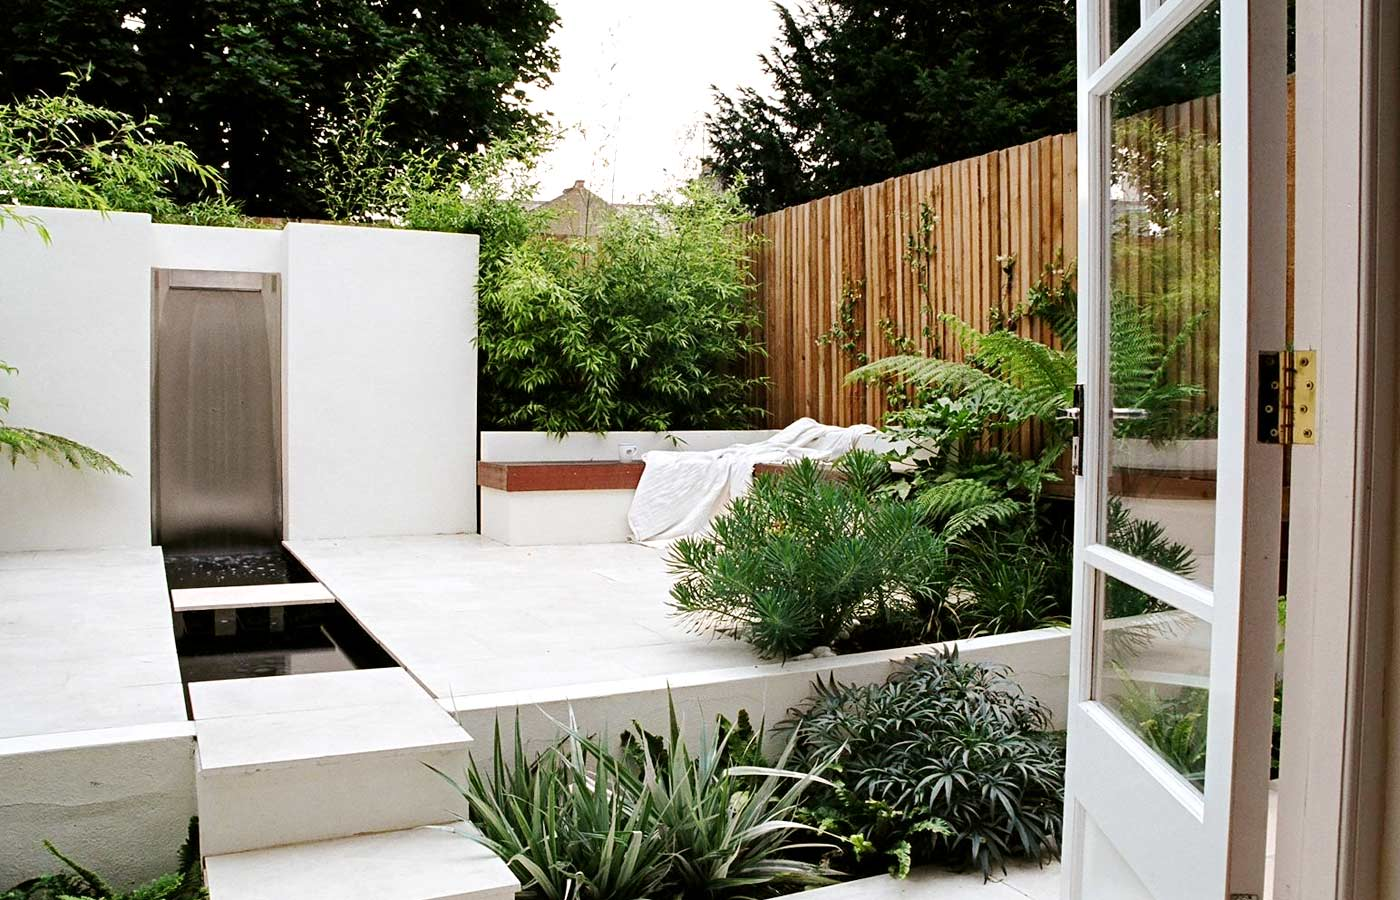 Small urban garden design garden design st albans for Small garden design